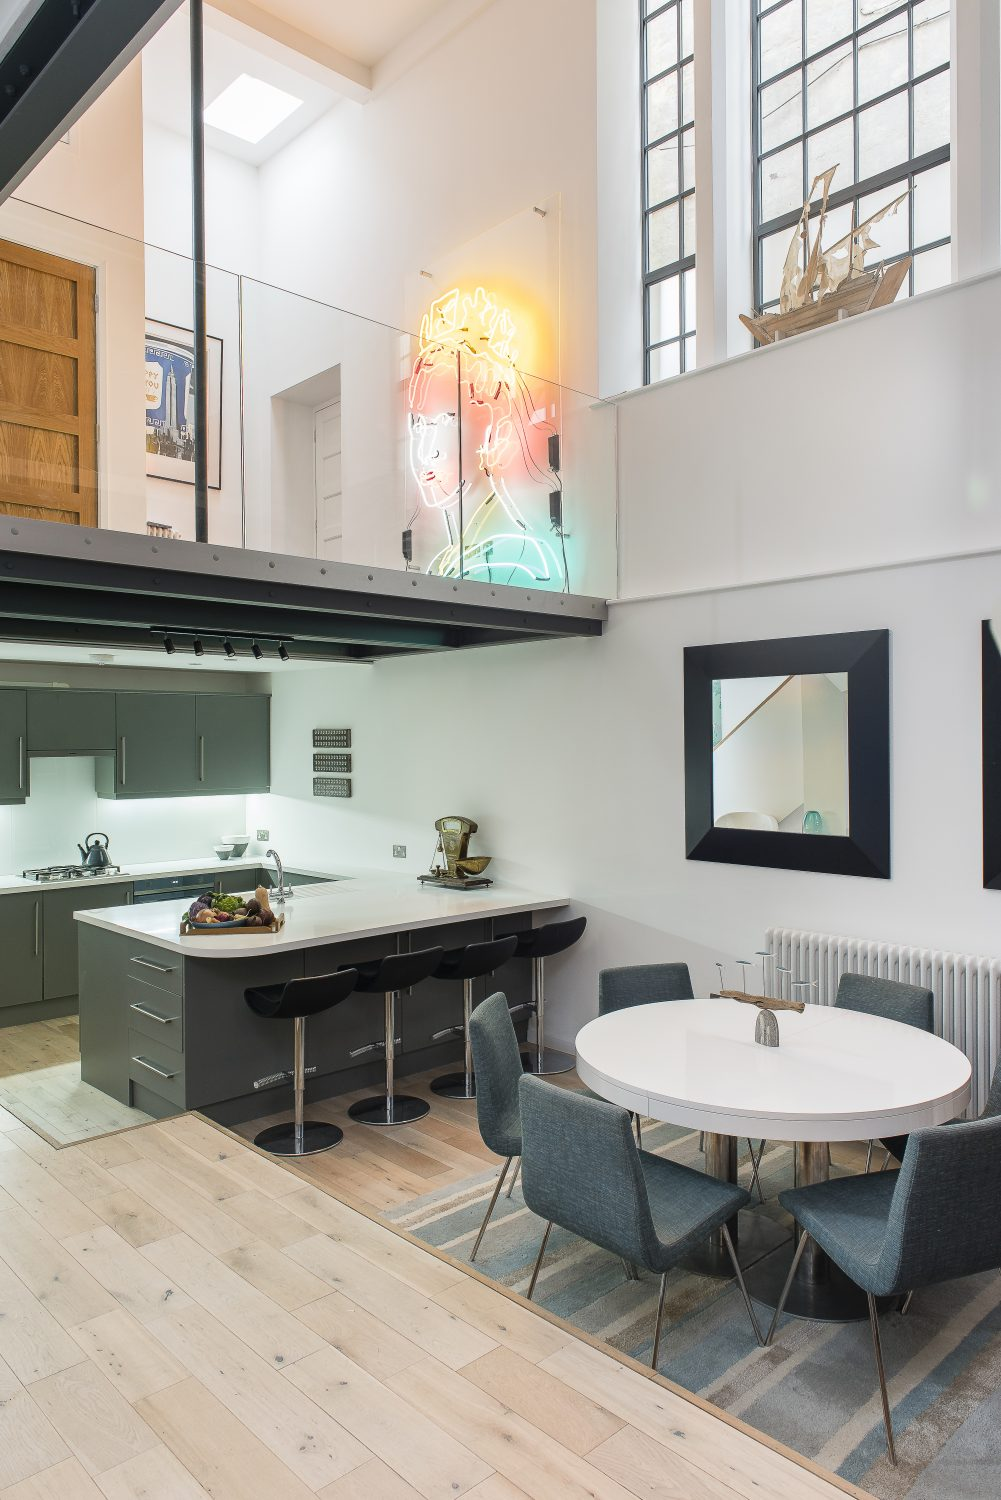 The kitchen, by Alpine Joinery, is at one end of the ground floor living area